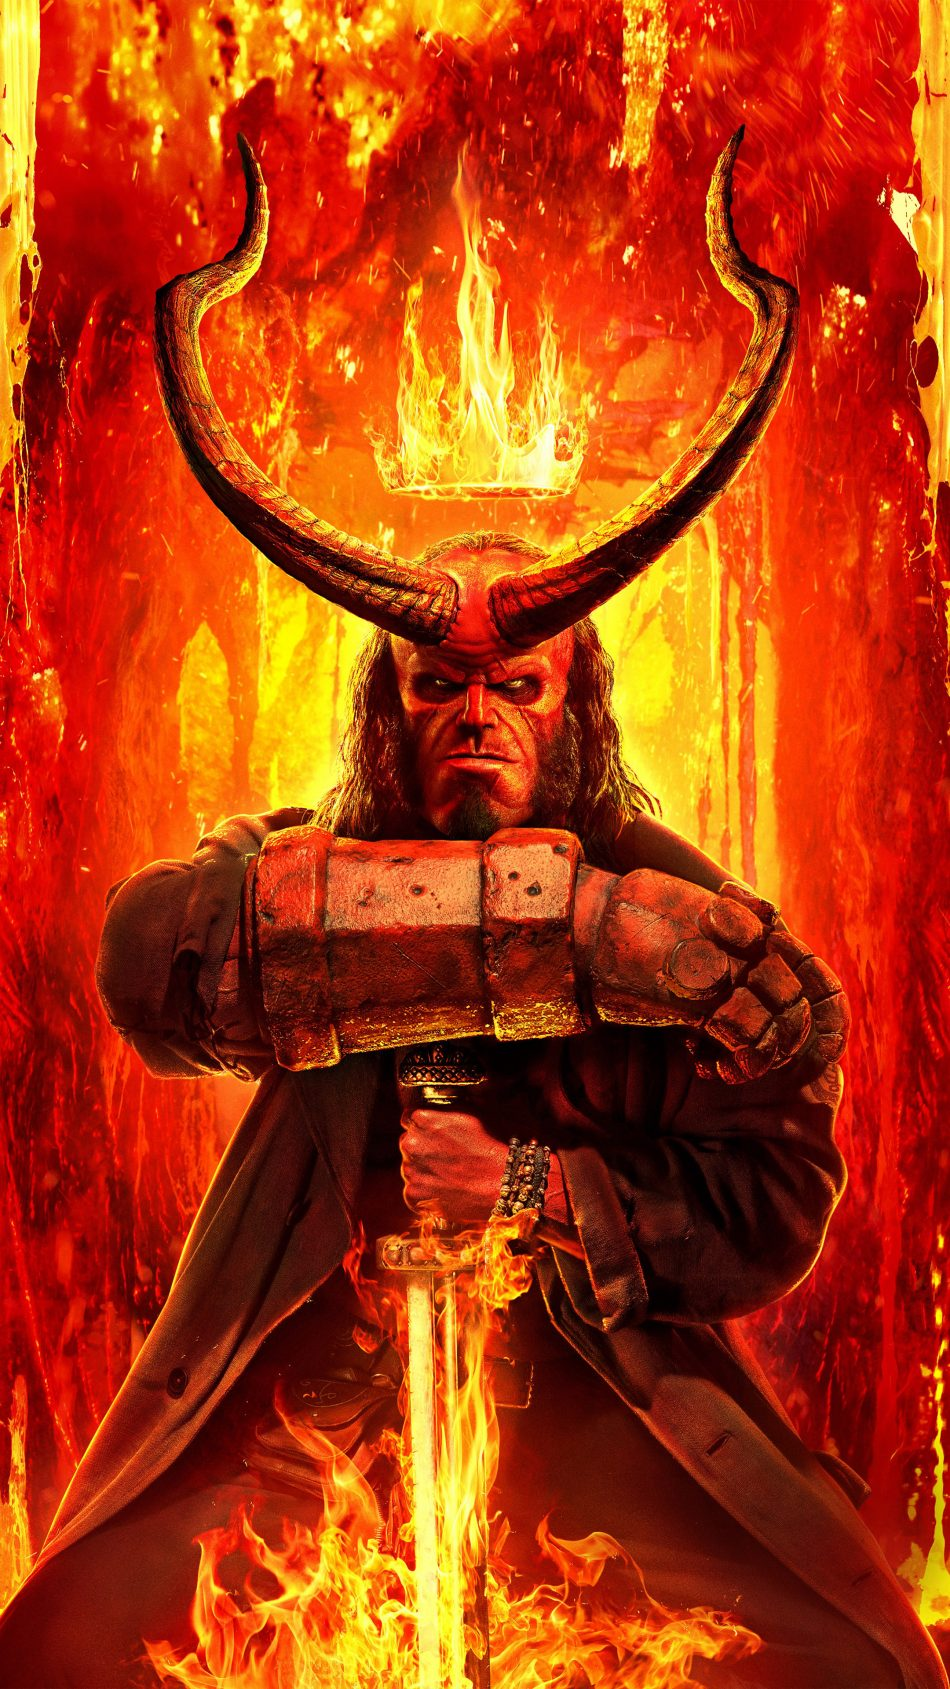 Download Hellboy Movie 2019 Free Pure 4k Ultra Hd Mobile